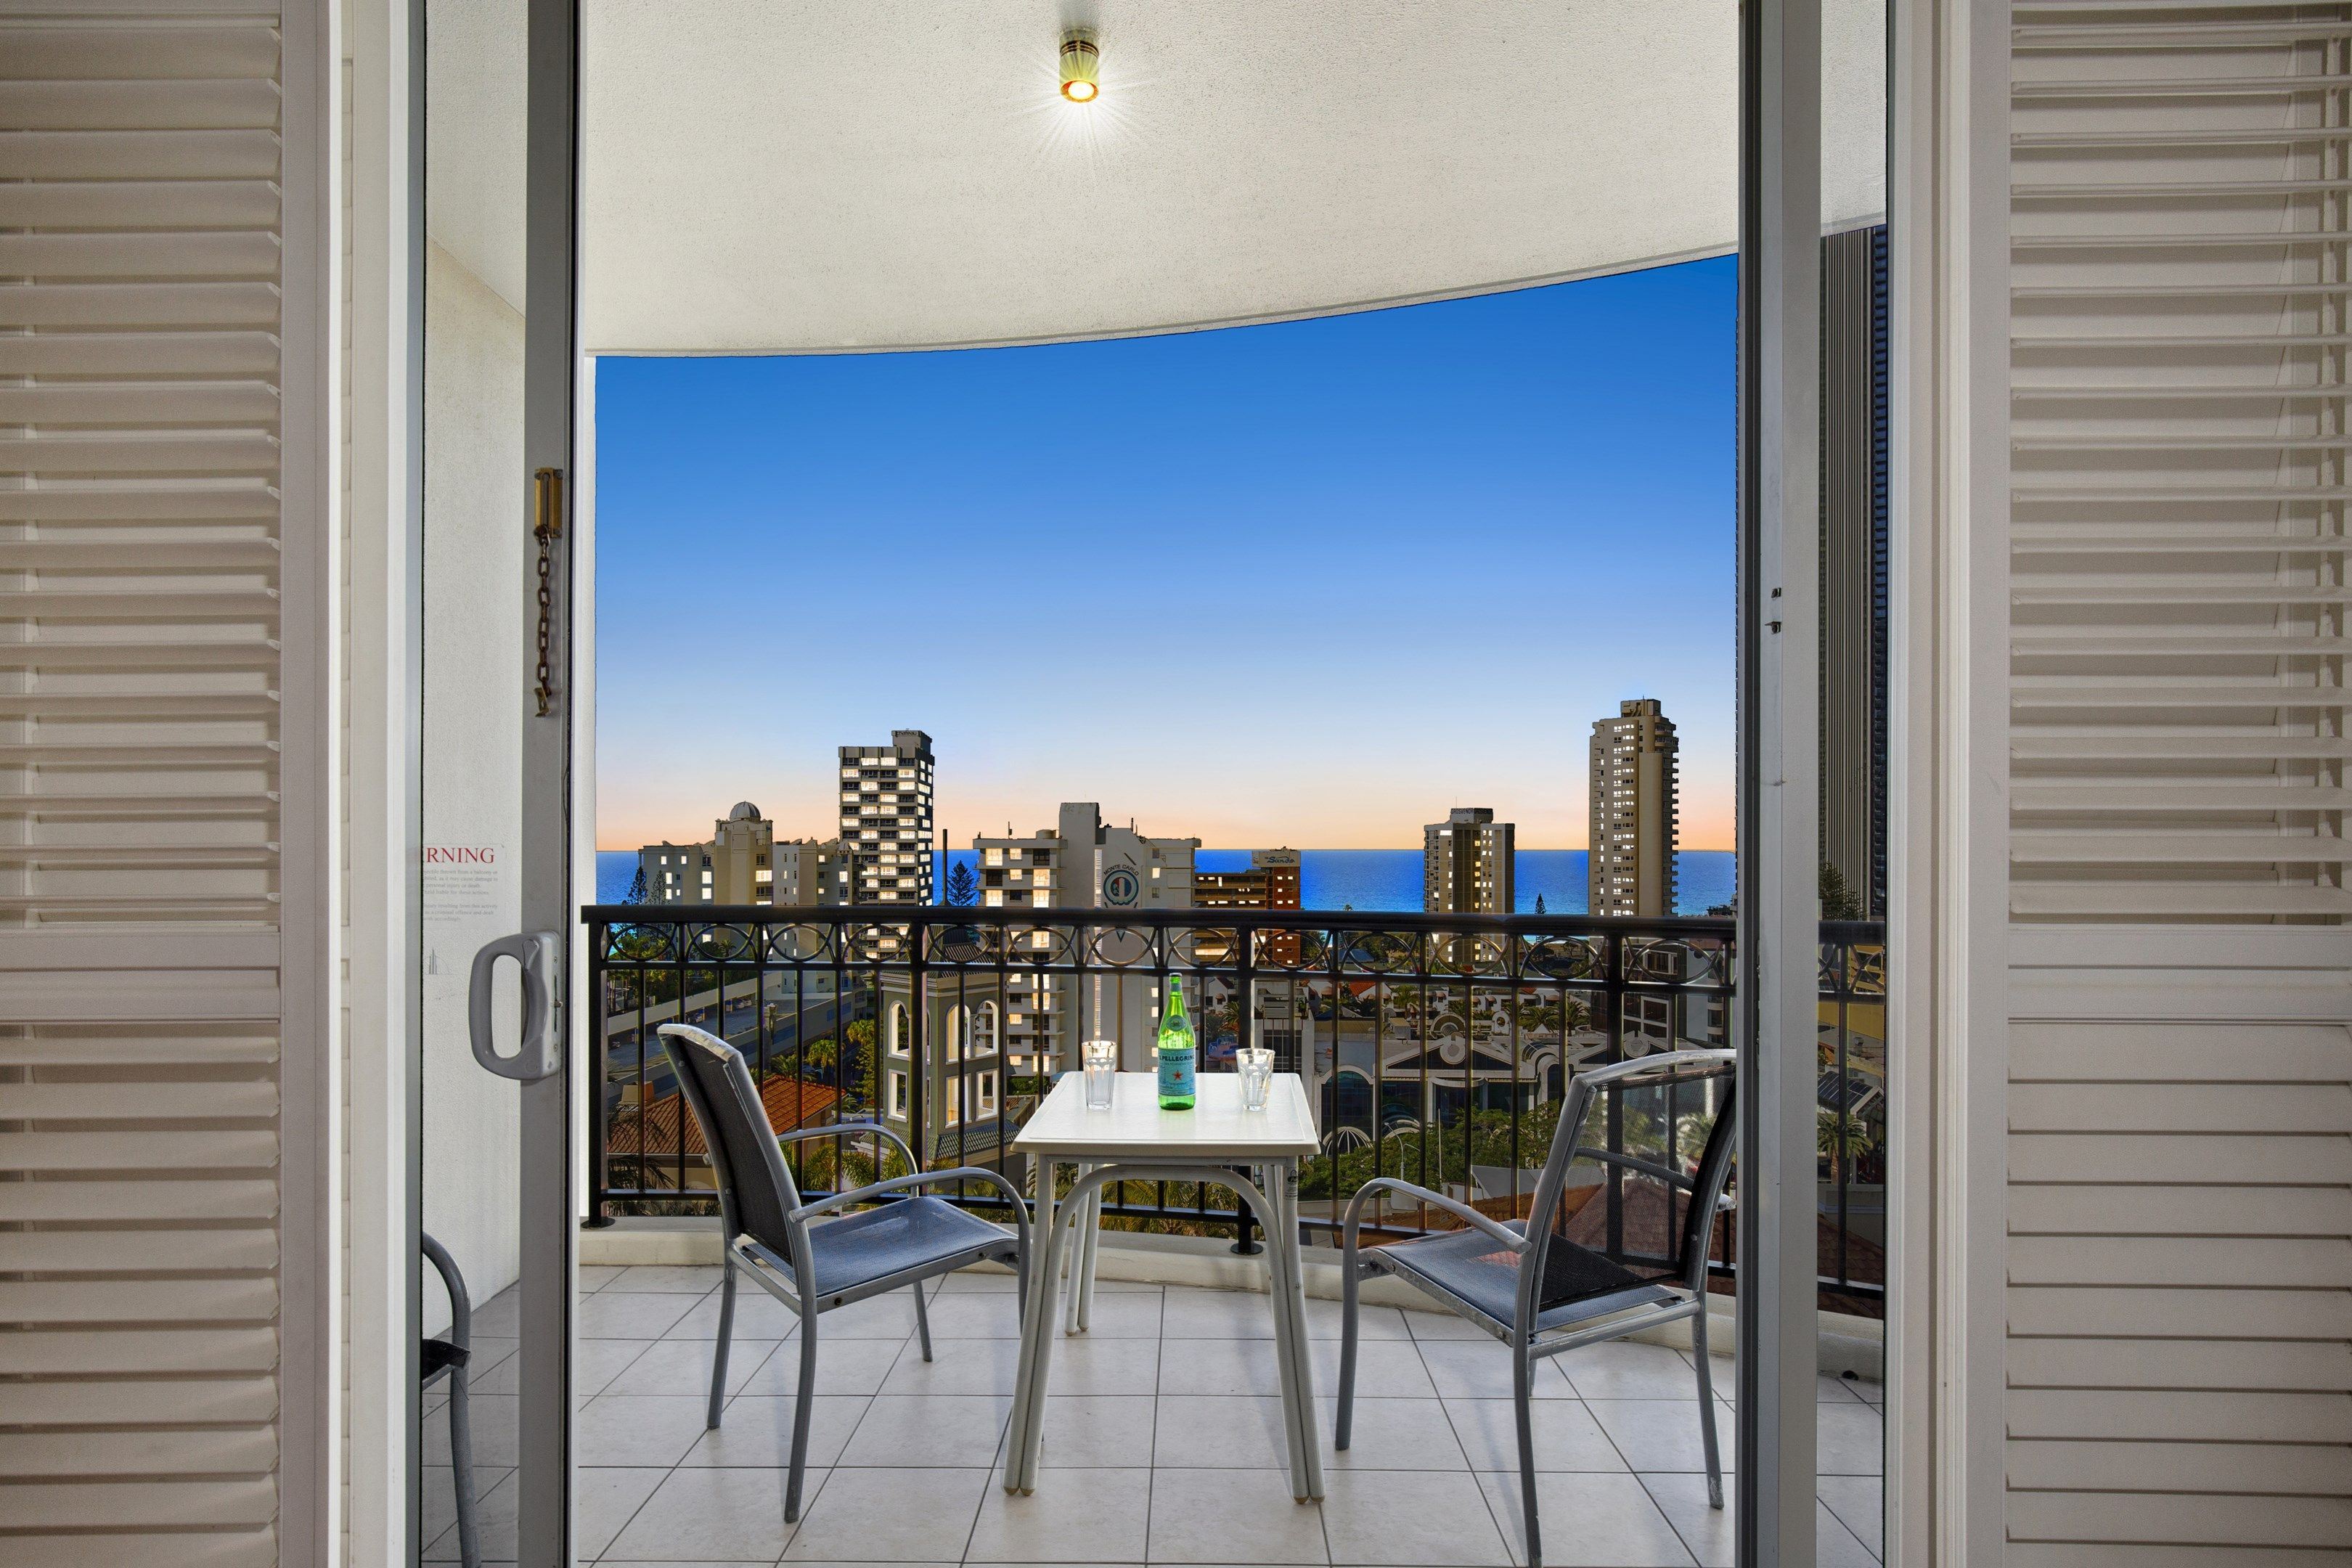 2 Bedroom Apartment For Sale At 2116 23 Ferny Avenue Surfers Paradise Qld 4217 View Property Photos Floor Surfers Paradise Apartments For Sale Domain Com Au